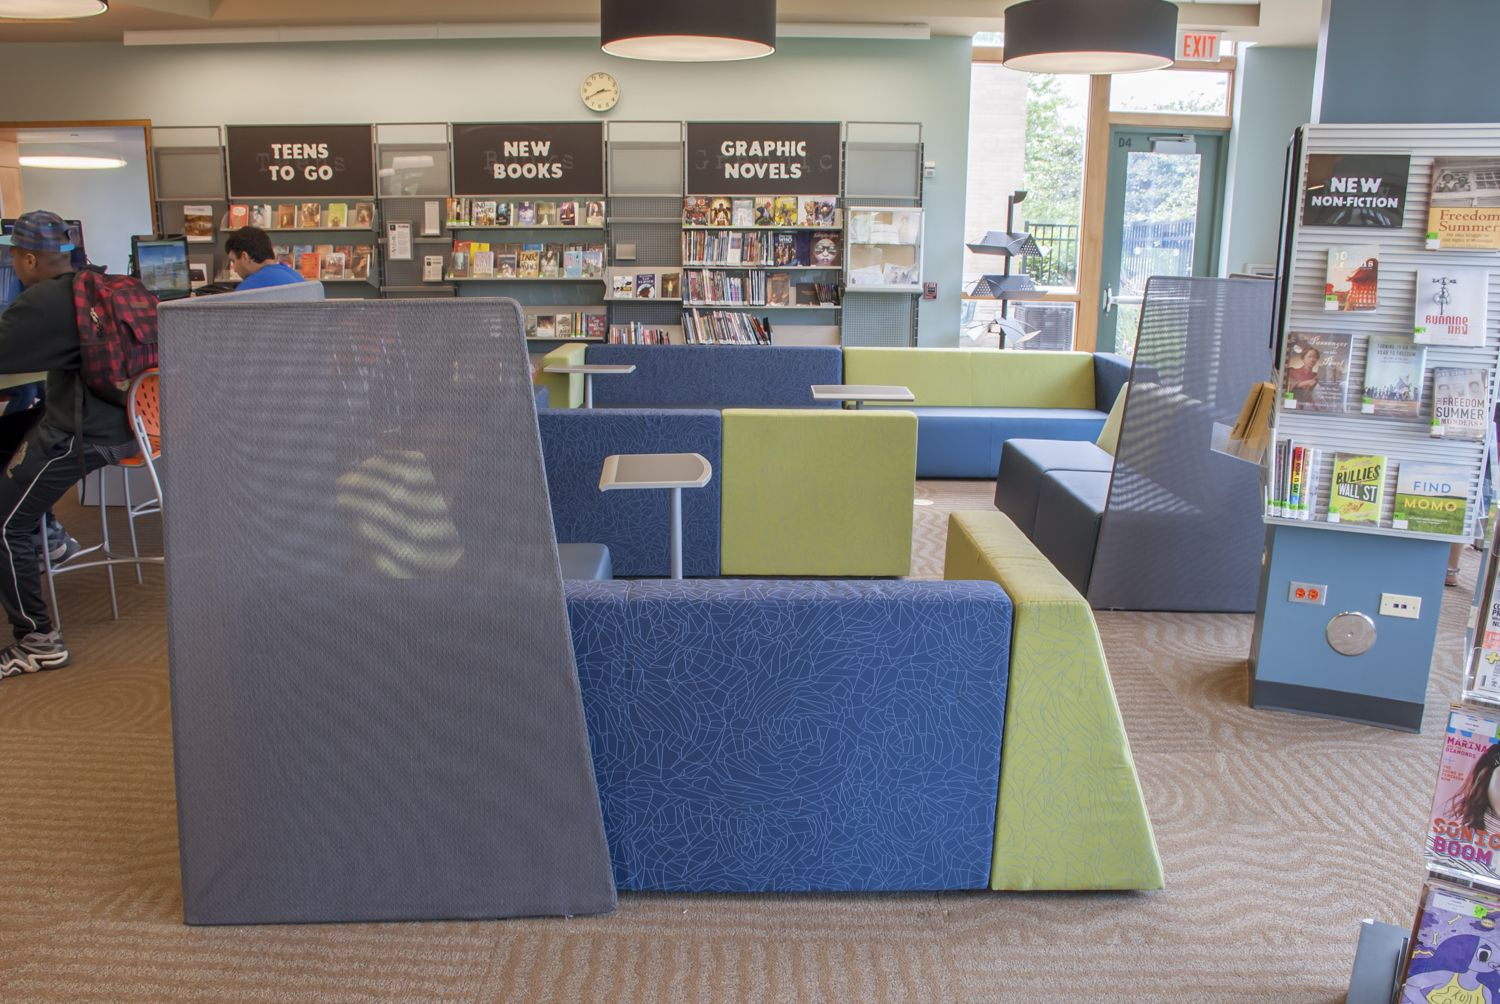 10 Library Cafe Style And Booth Seating Table And Chairs Ideas Booth Seating Library Cafe Cafe Style